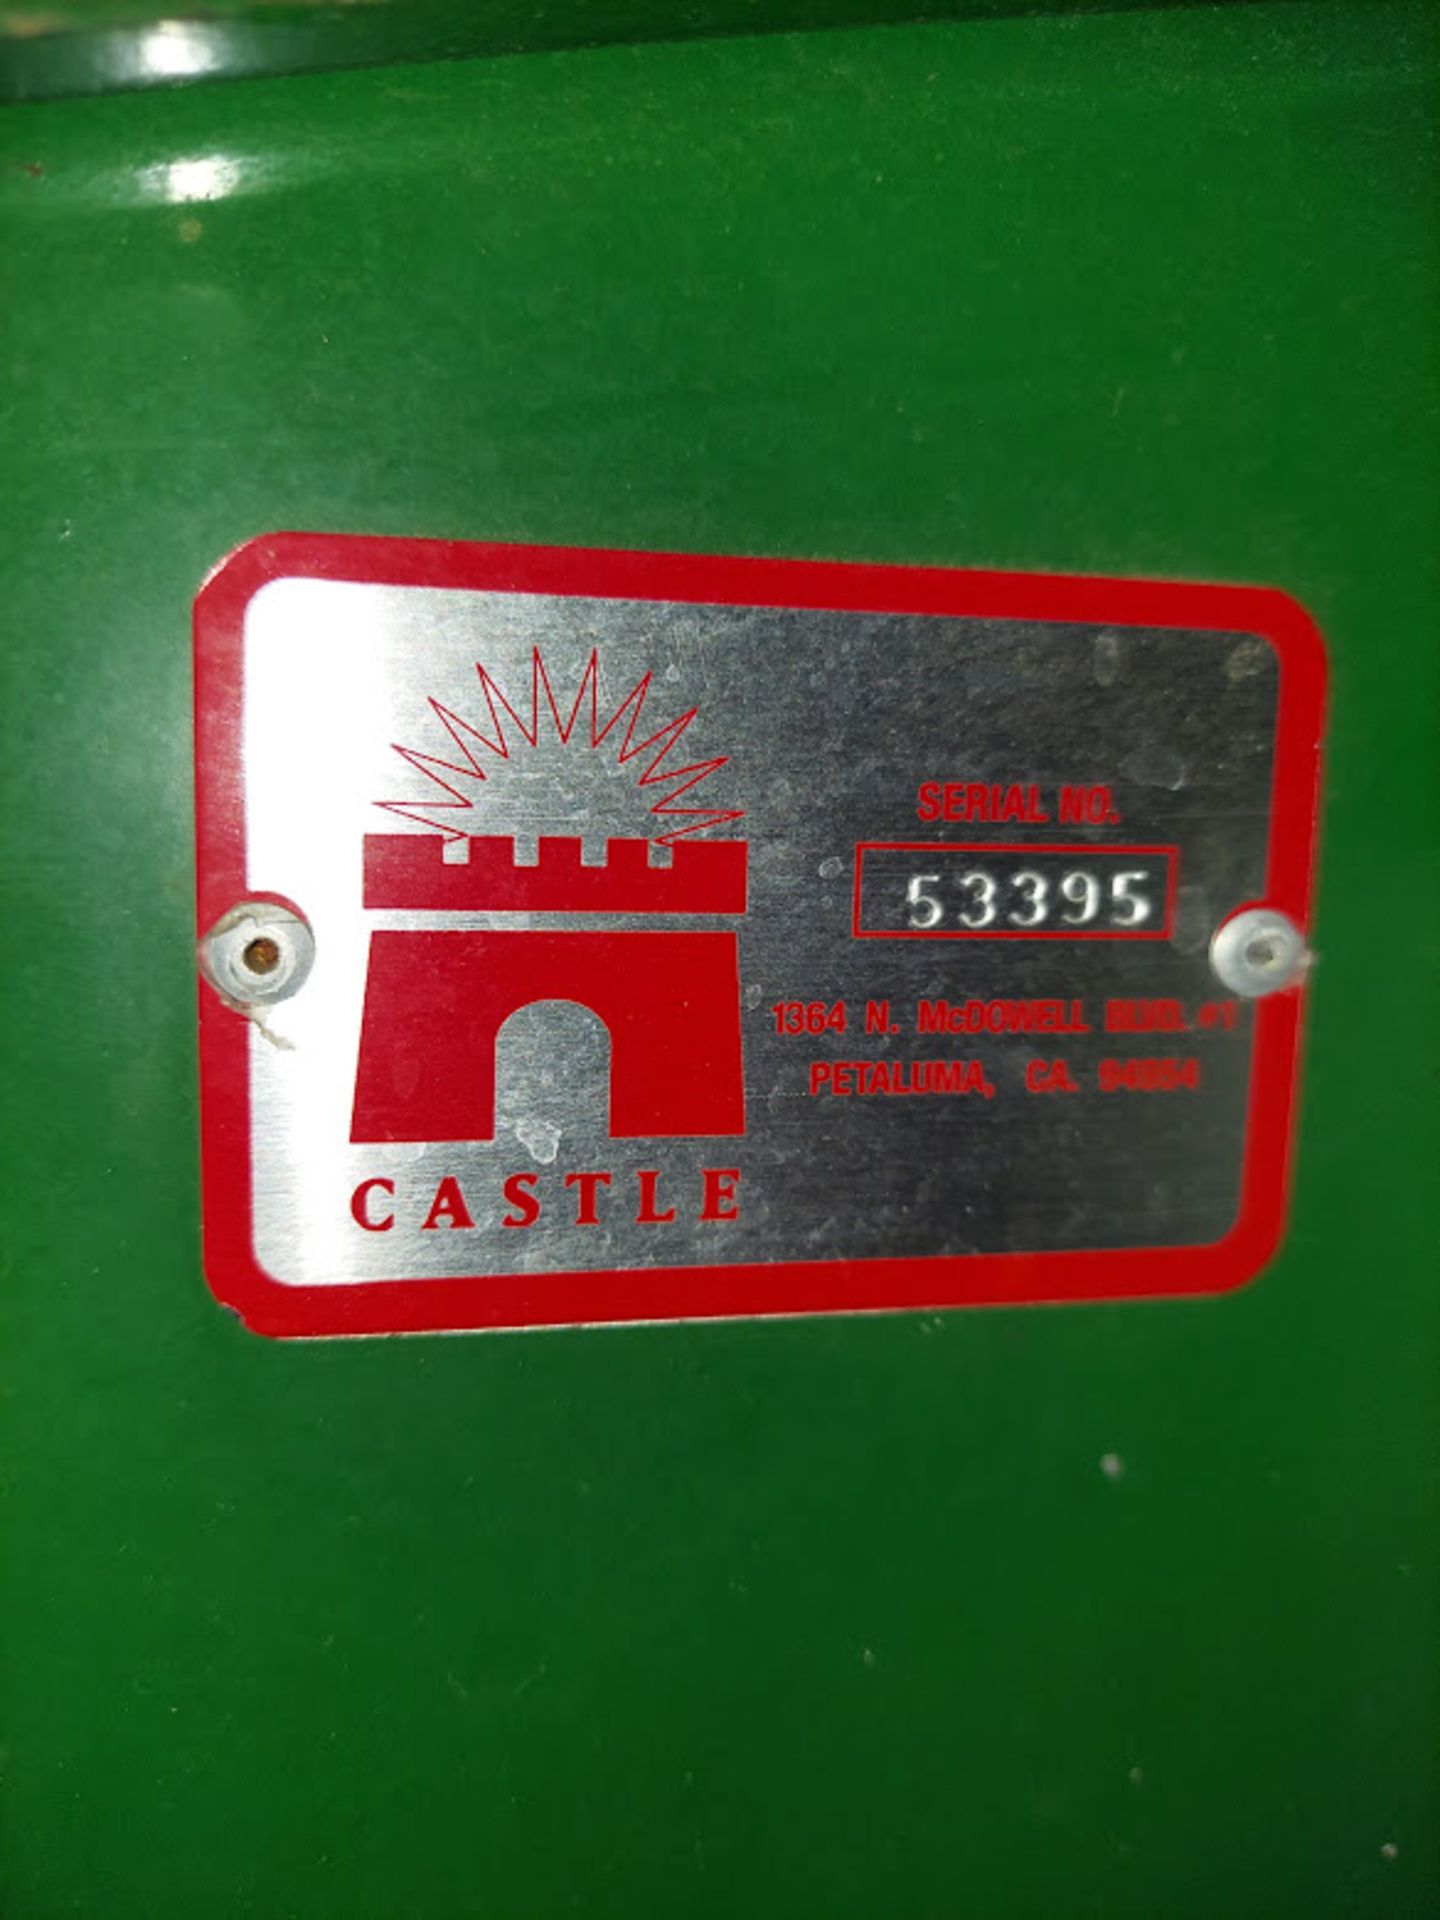 Castle LB-30 Line Boring Machine, Single head with 30 Spindles, 230 Volts 1 Phase - Image 5 of 5